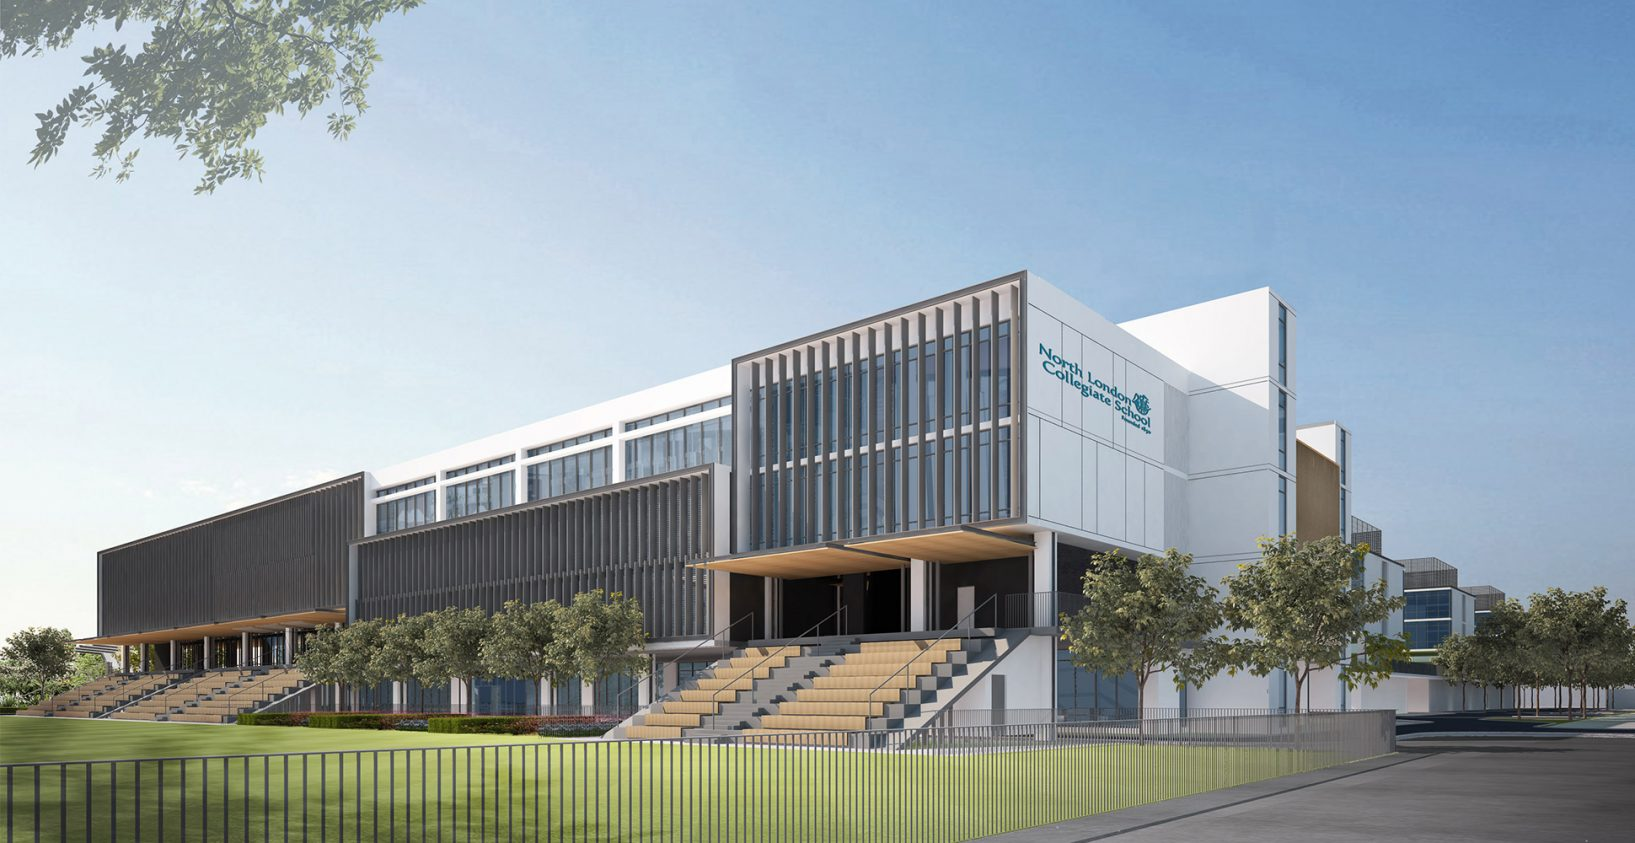 Dubai's Amanat Holdings Buys North London Collegiate School's Real Estate Assets For $109.35 Million